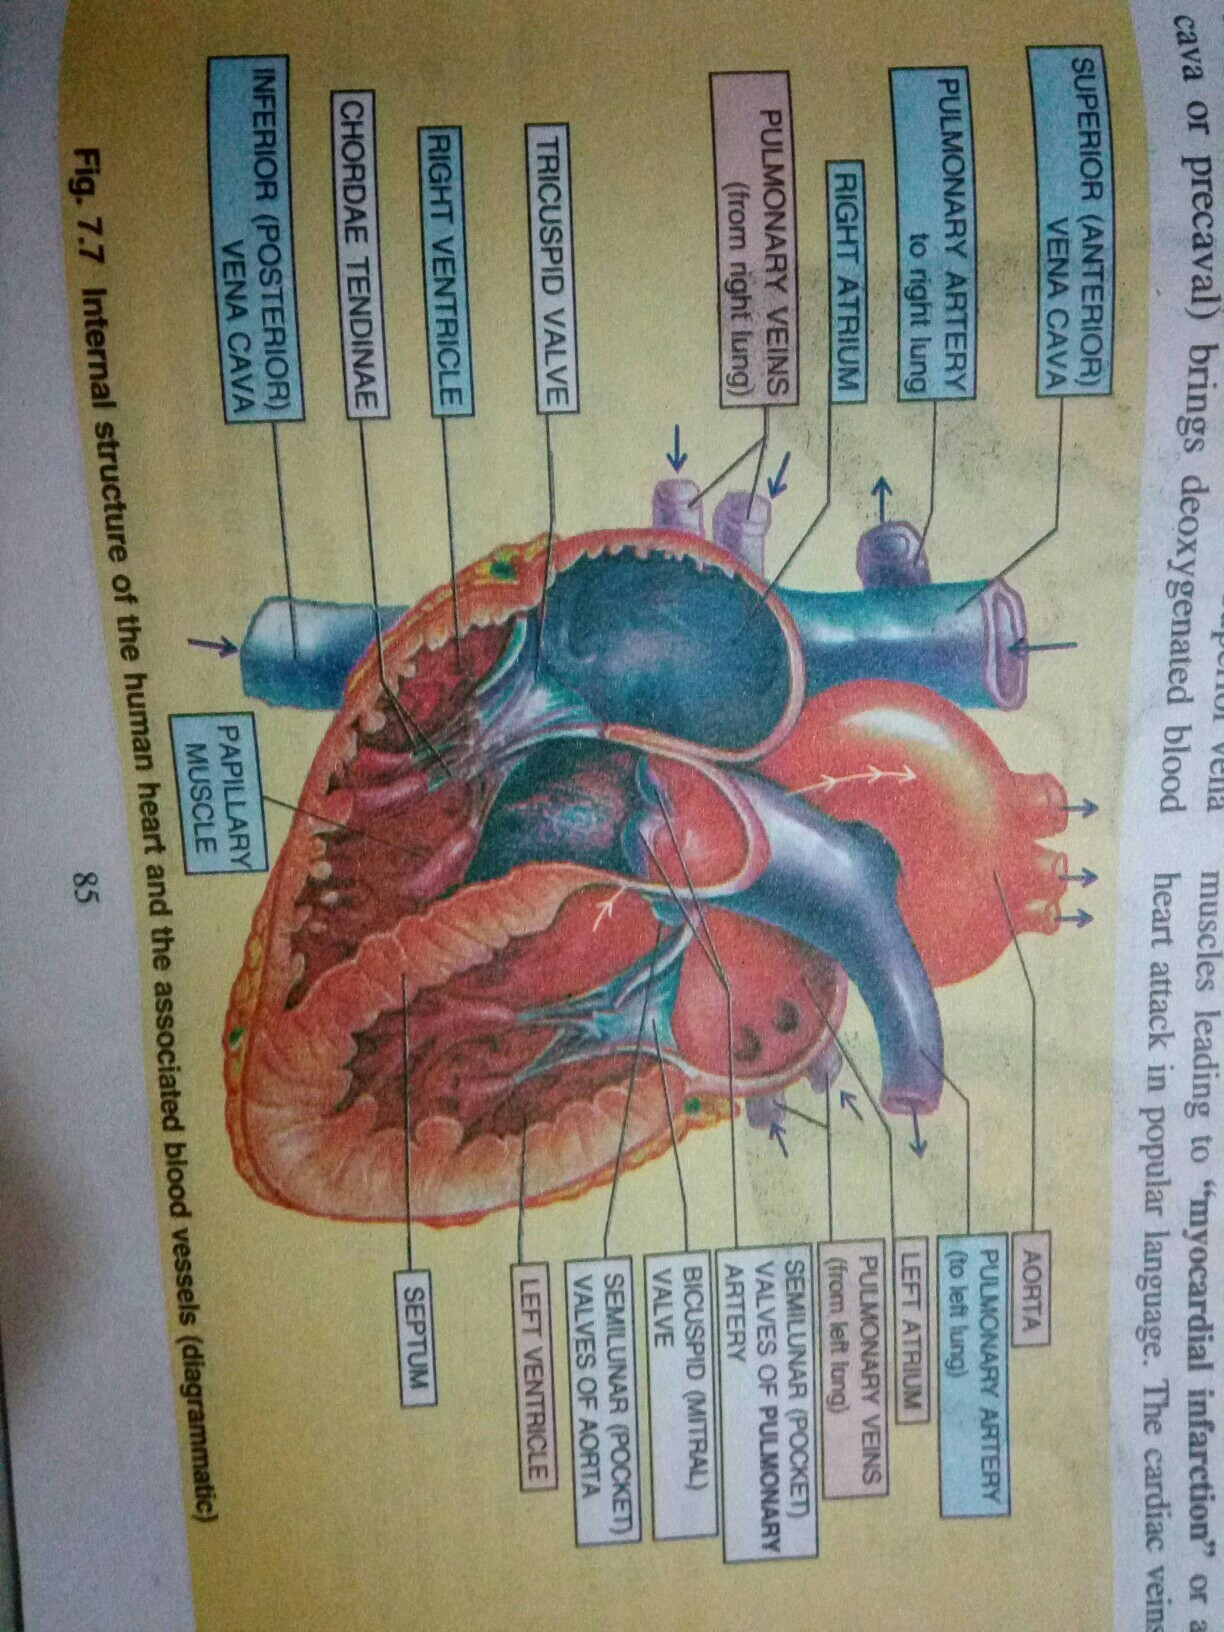 Draw A Neat Labeled Diagram Of Human Heart Brainly